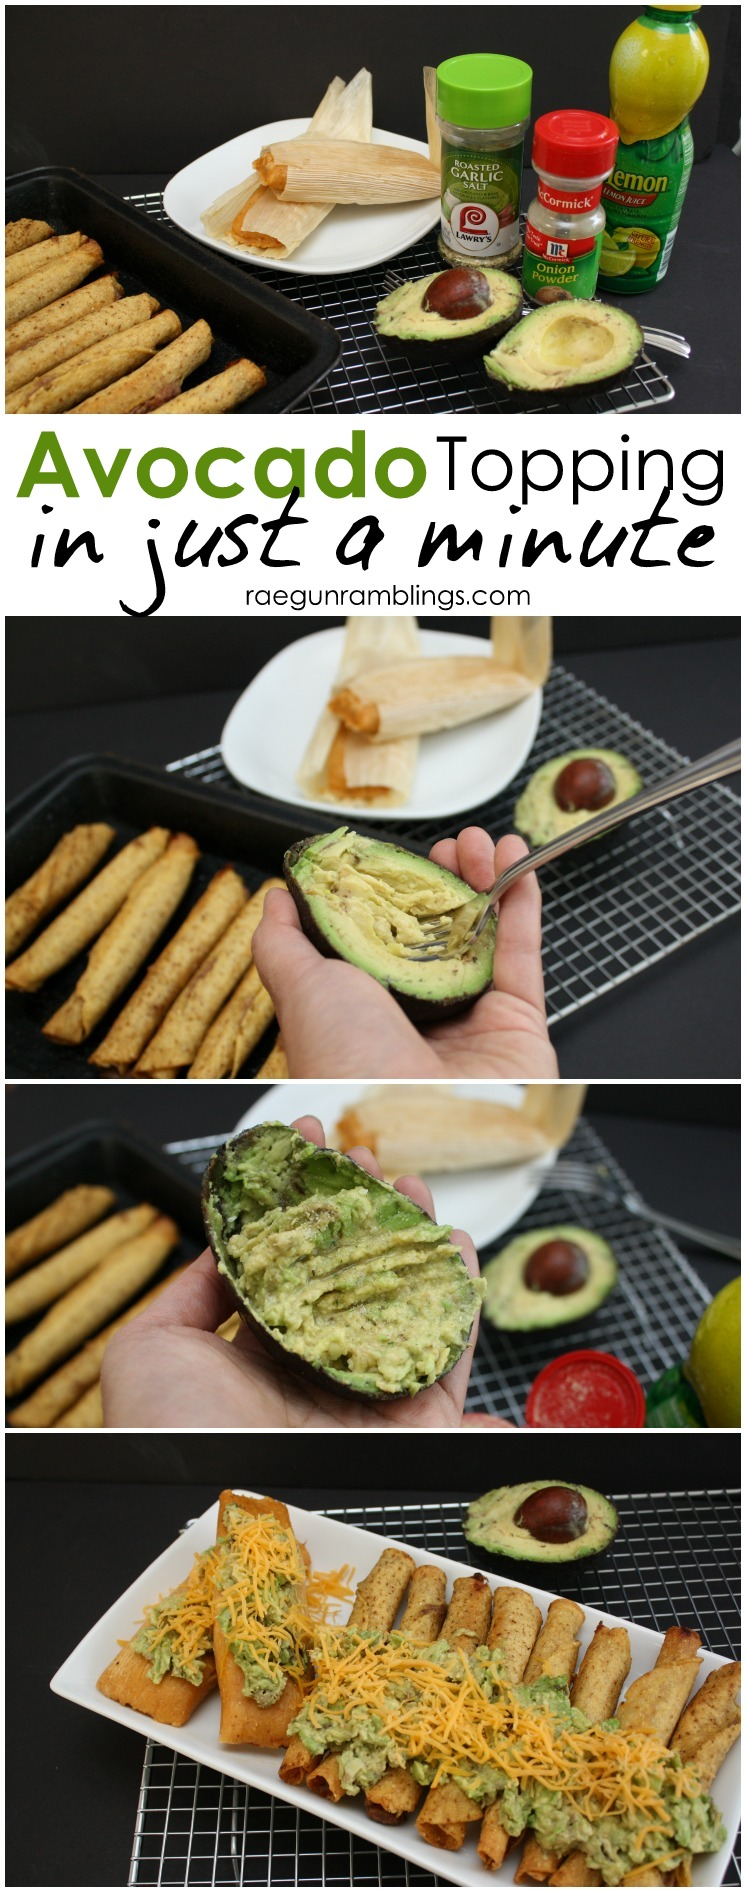 The best avocado topping for taquitoes and tamales. Takes just a minute to make.